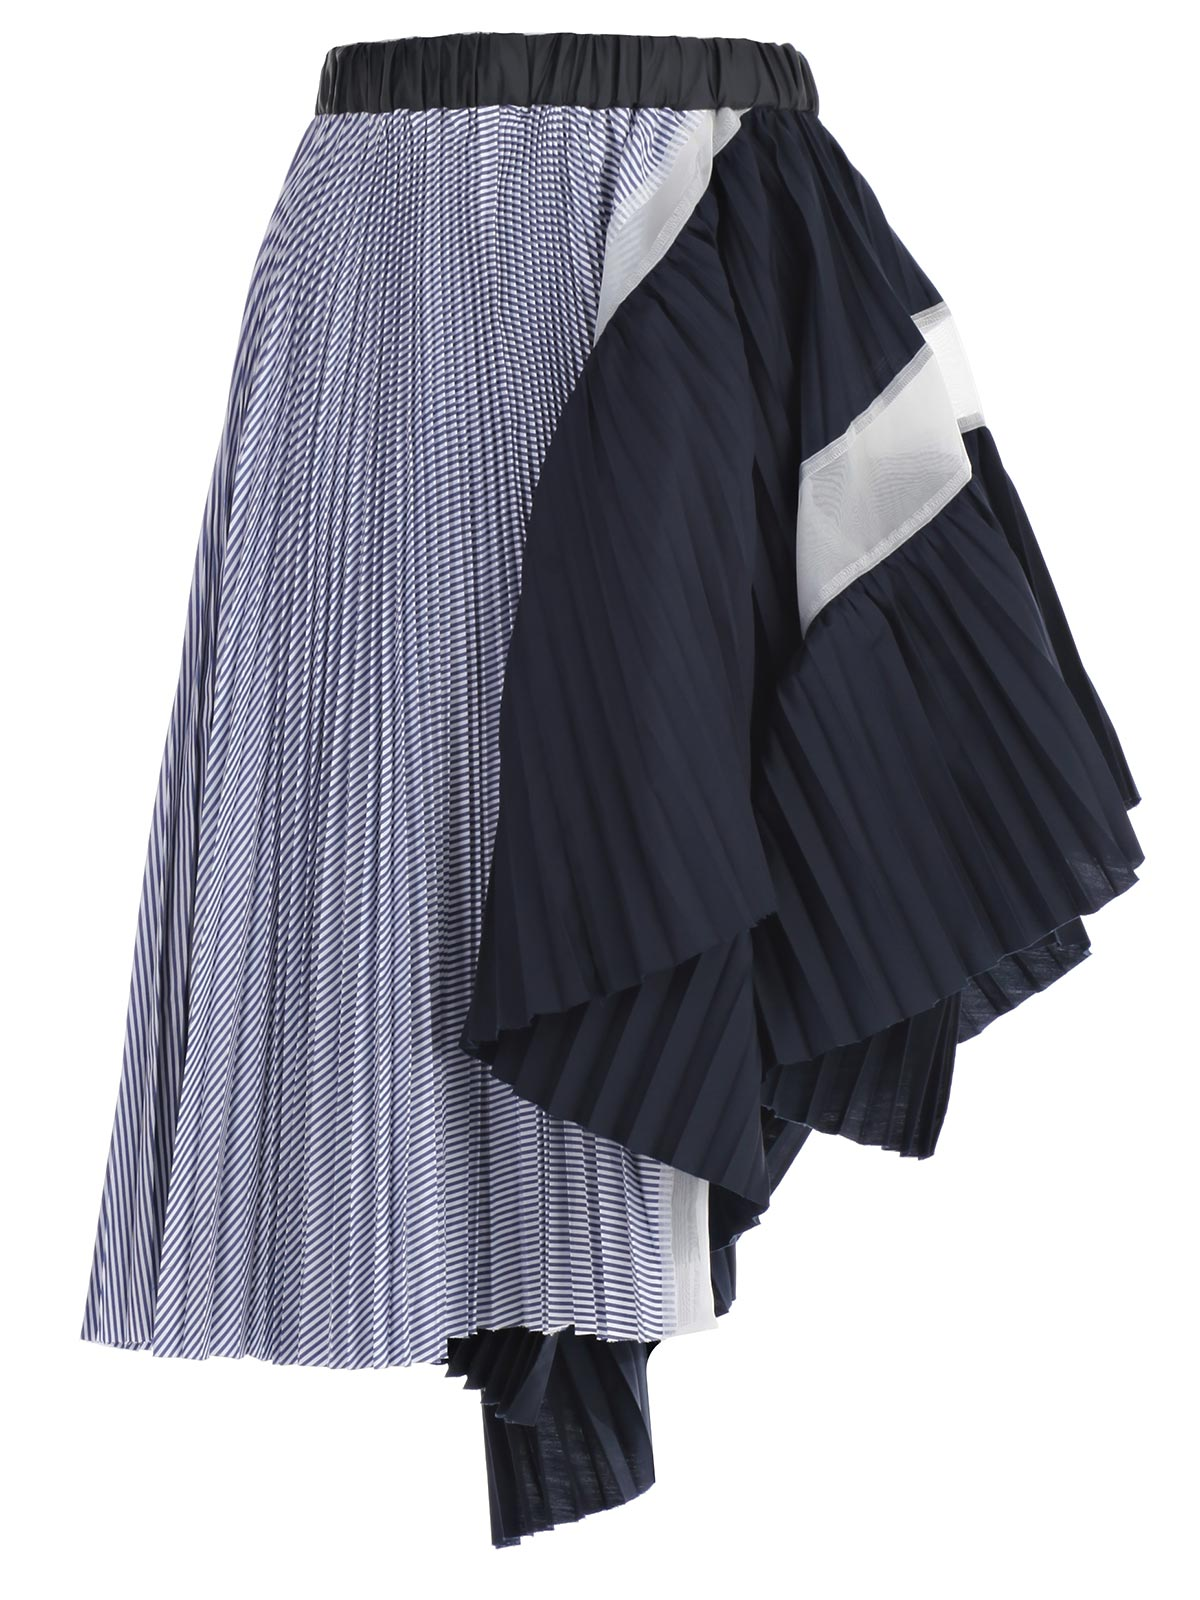 Picture of SACAI SKIRT ASYMMETRIC STRIPED SKIRT